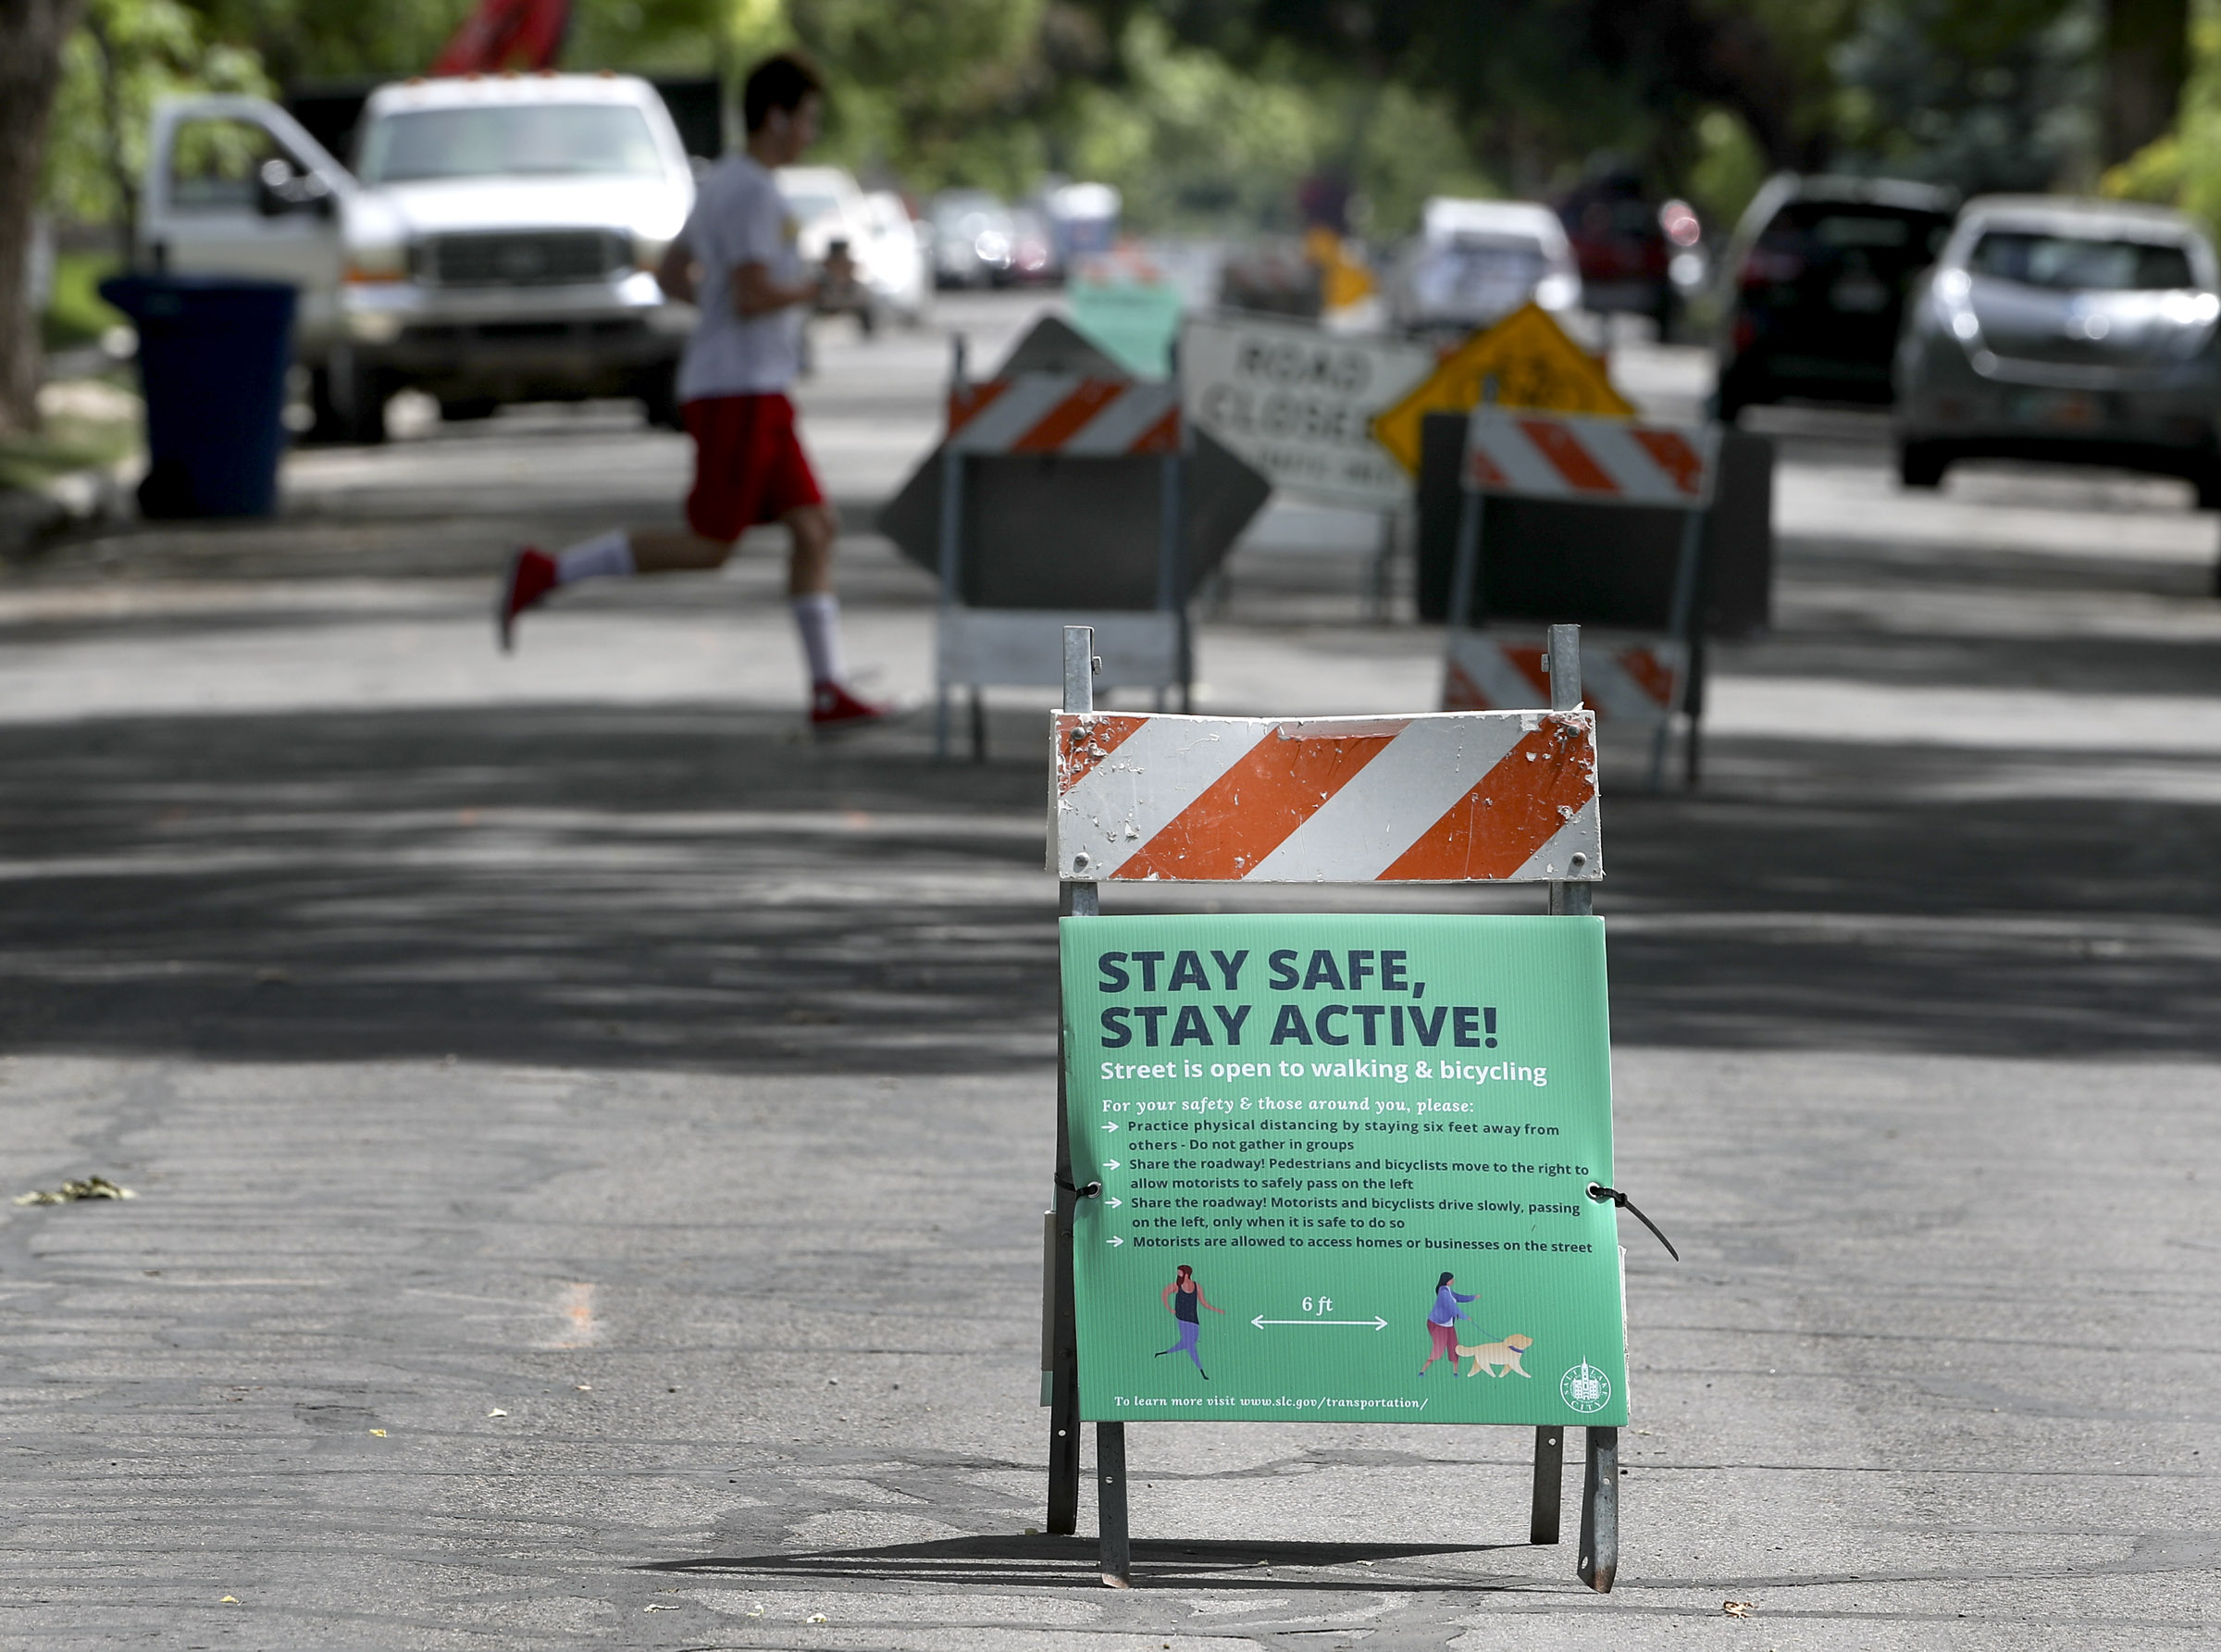 A jogger crosses 800 East near Bryant Avenue in Salt Lake City on Tuesday, June 2, 2020. Several city streets have been closed or restricted to traffic during the coronavirus pandemic. The traffic on 800 East has restricted traffic between 700 South and 1700 South.